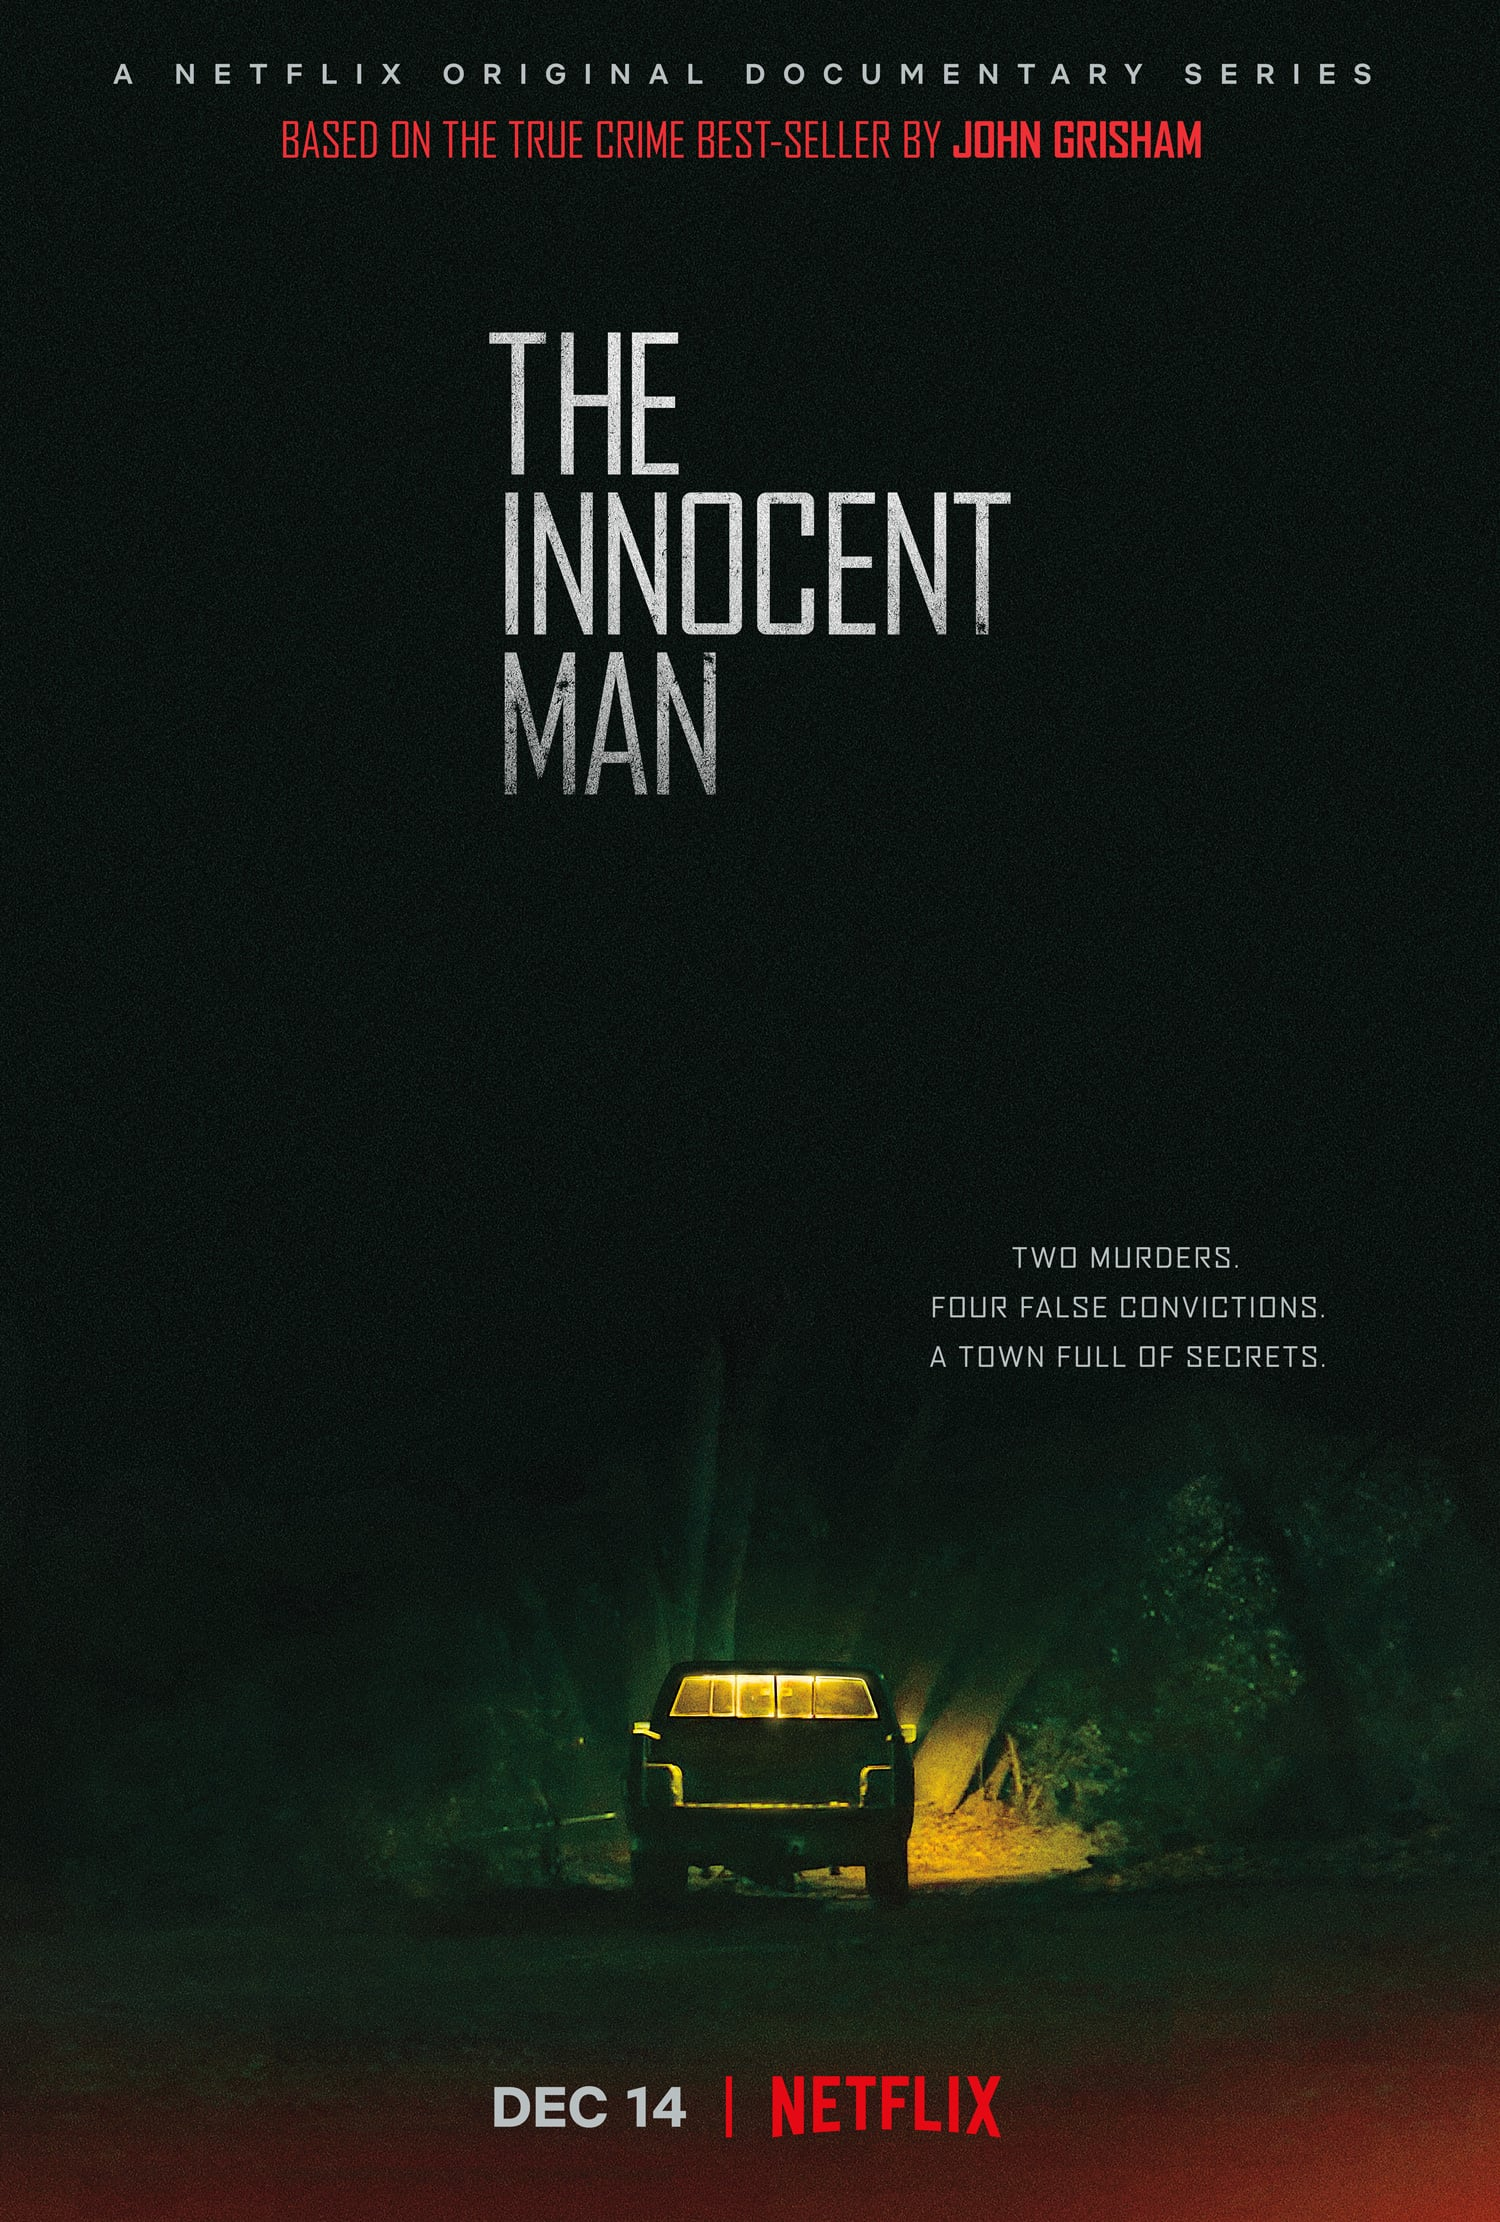 The Innocent Man Netflix Series Details | POPSUGAR Entertainment